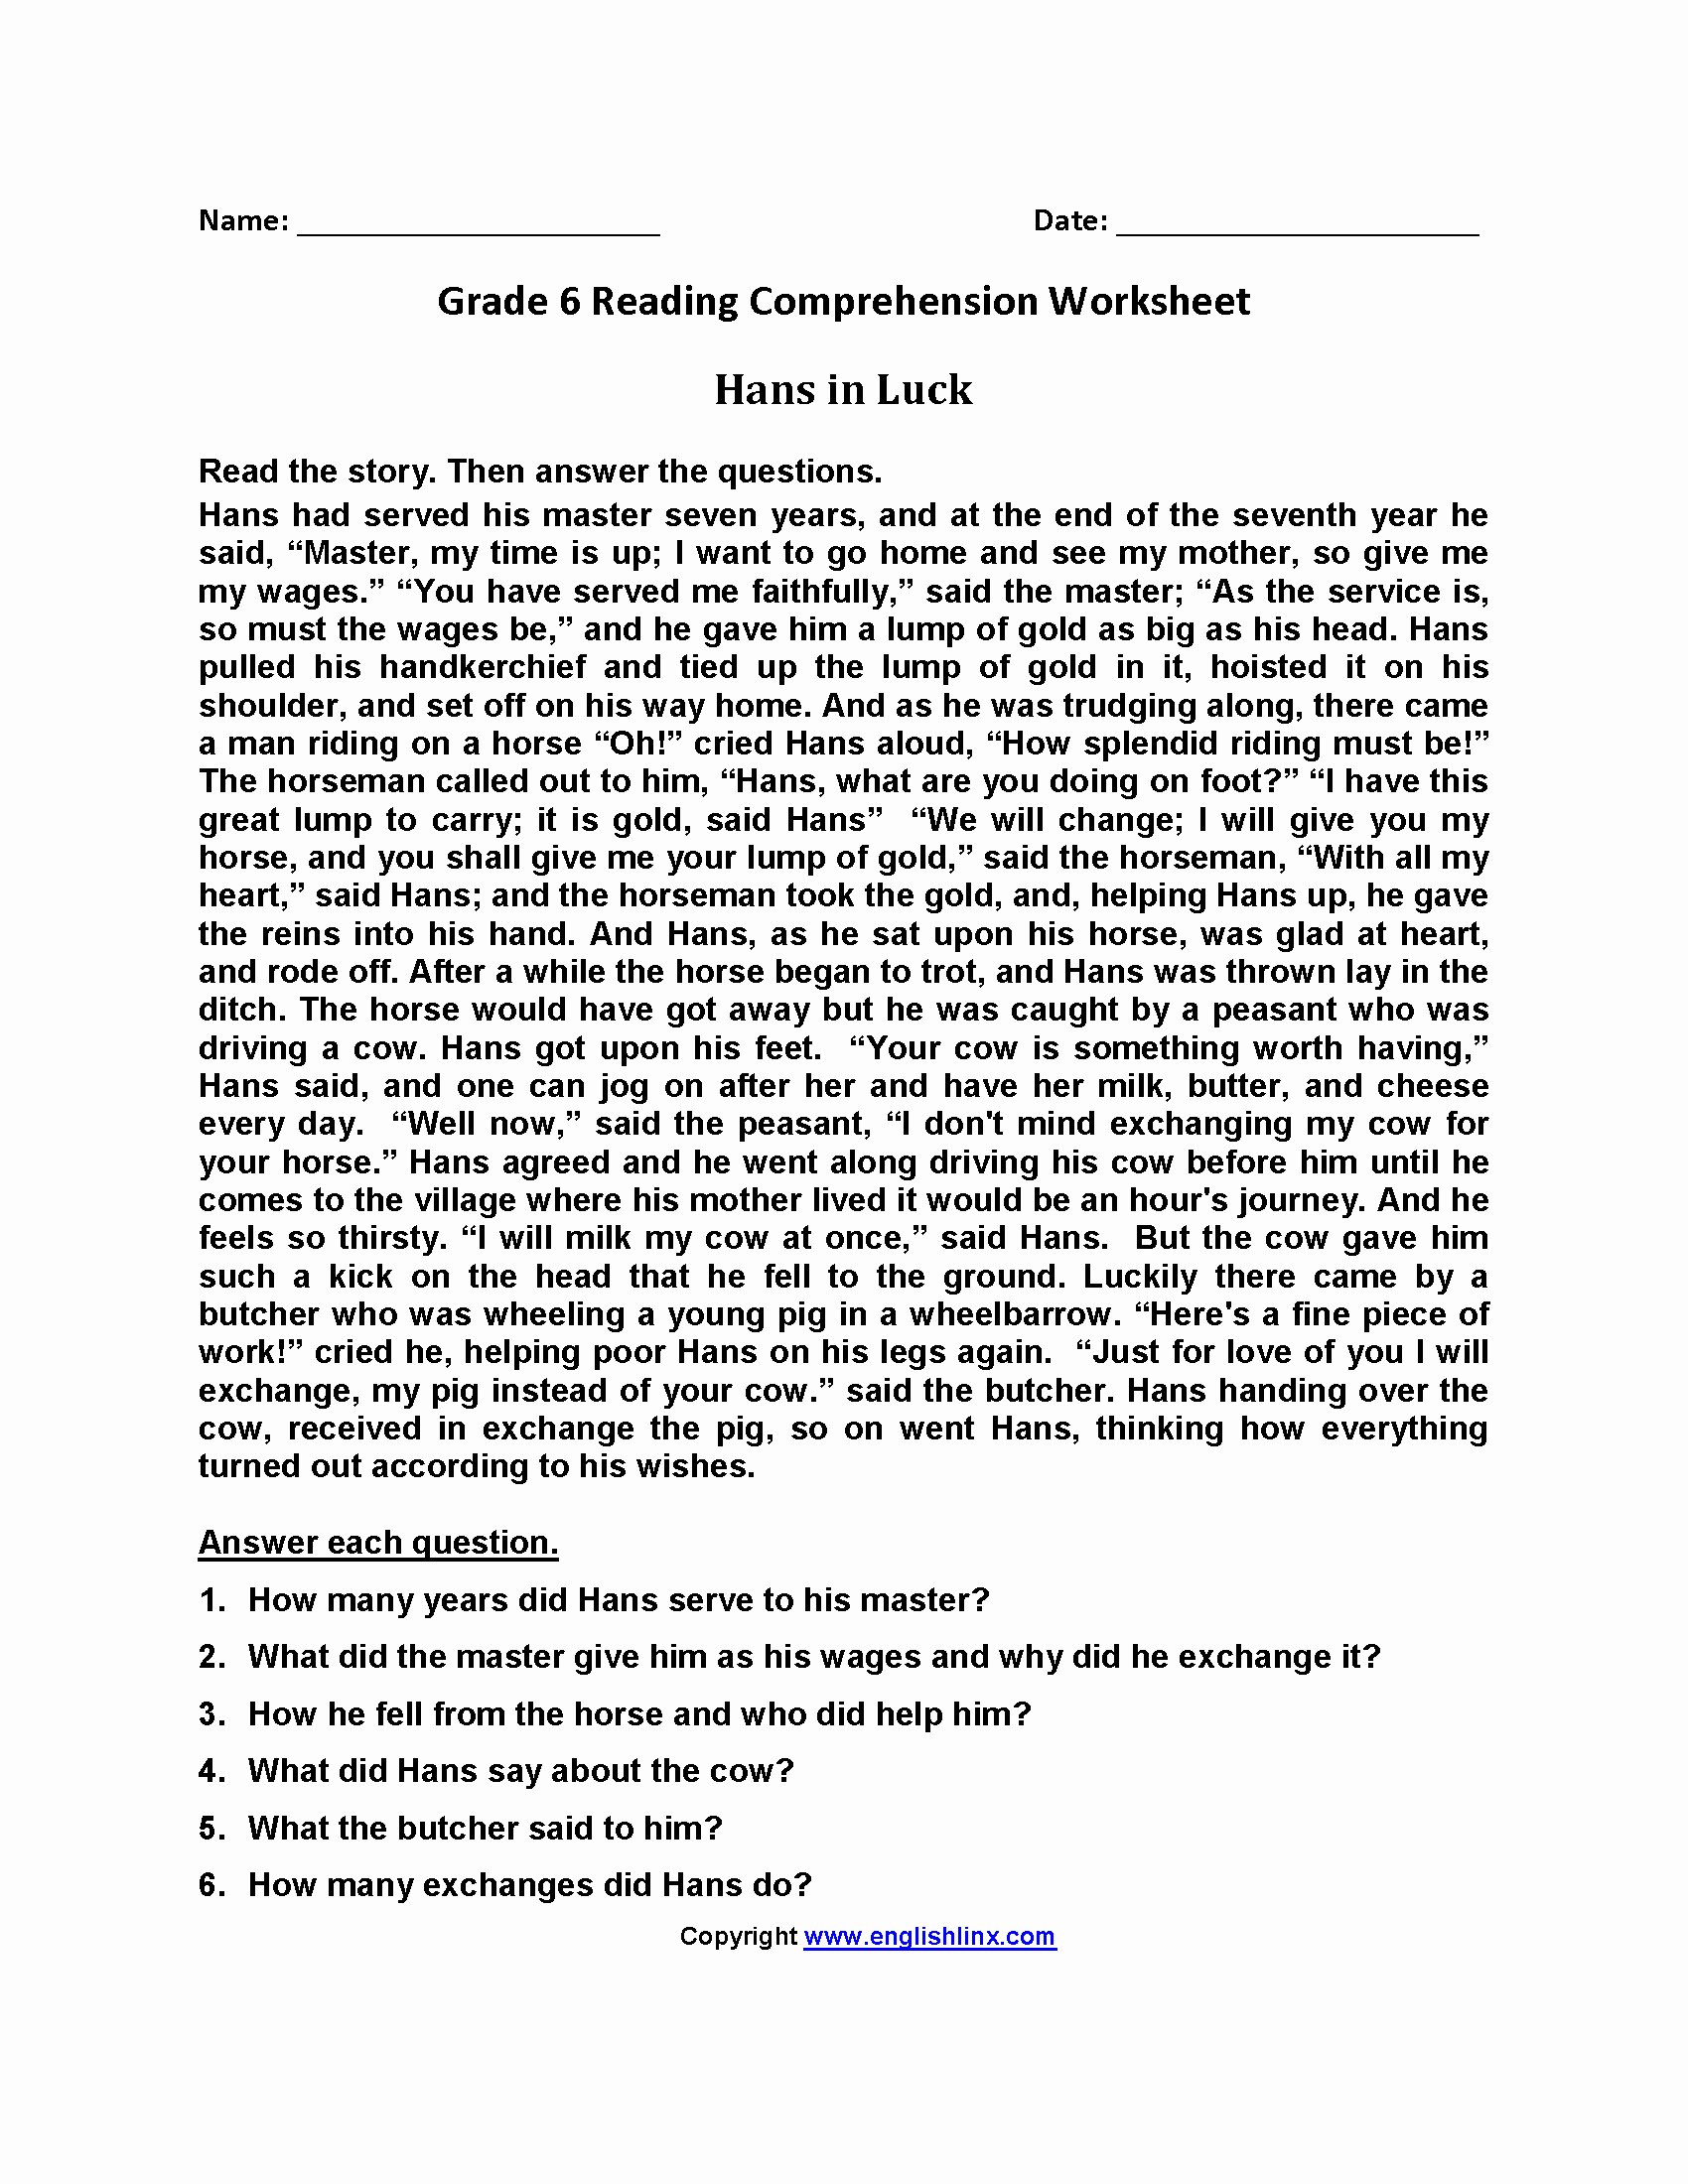 20 Free Printable Reading Comprehension Worksheets For 6Th Grade - Free Printable Reading Comprehension Worksheets Grade 5